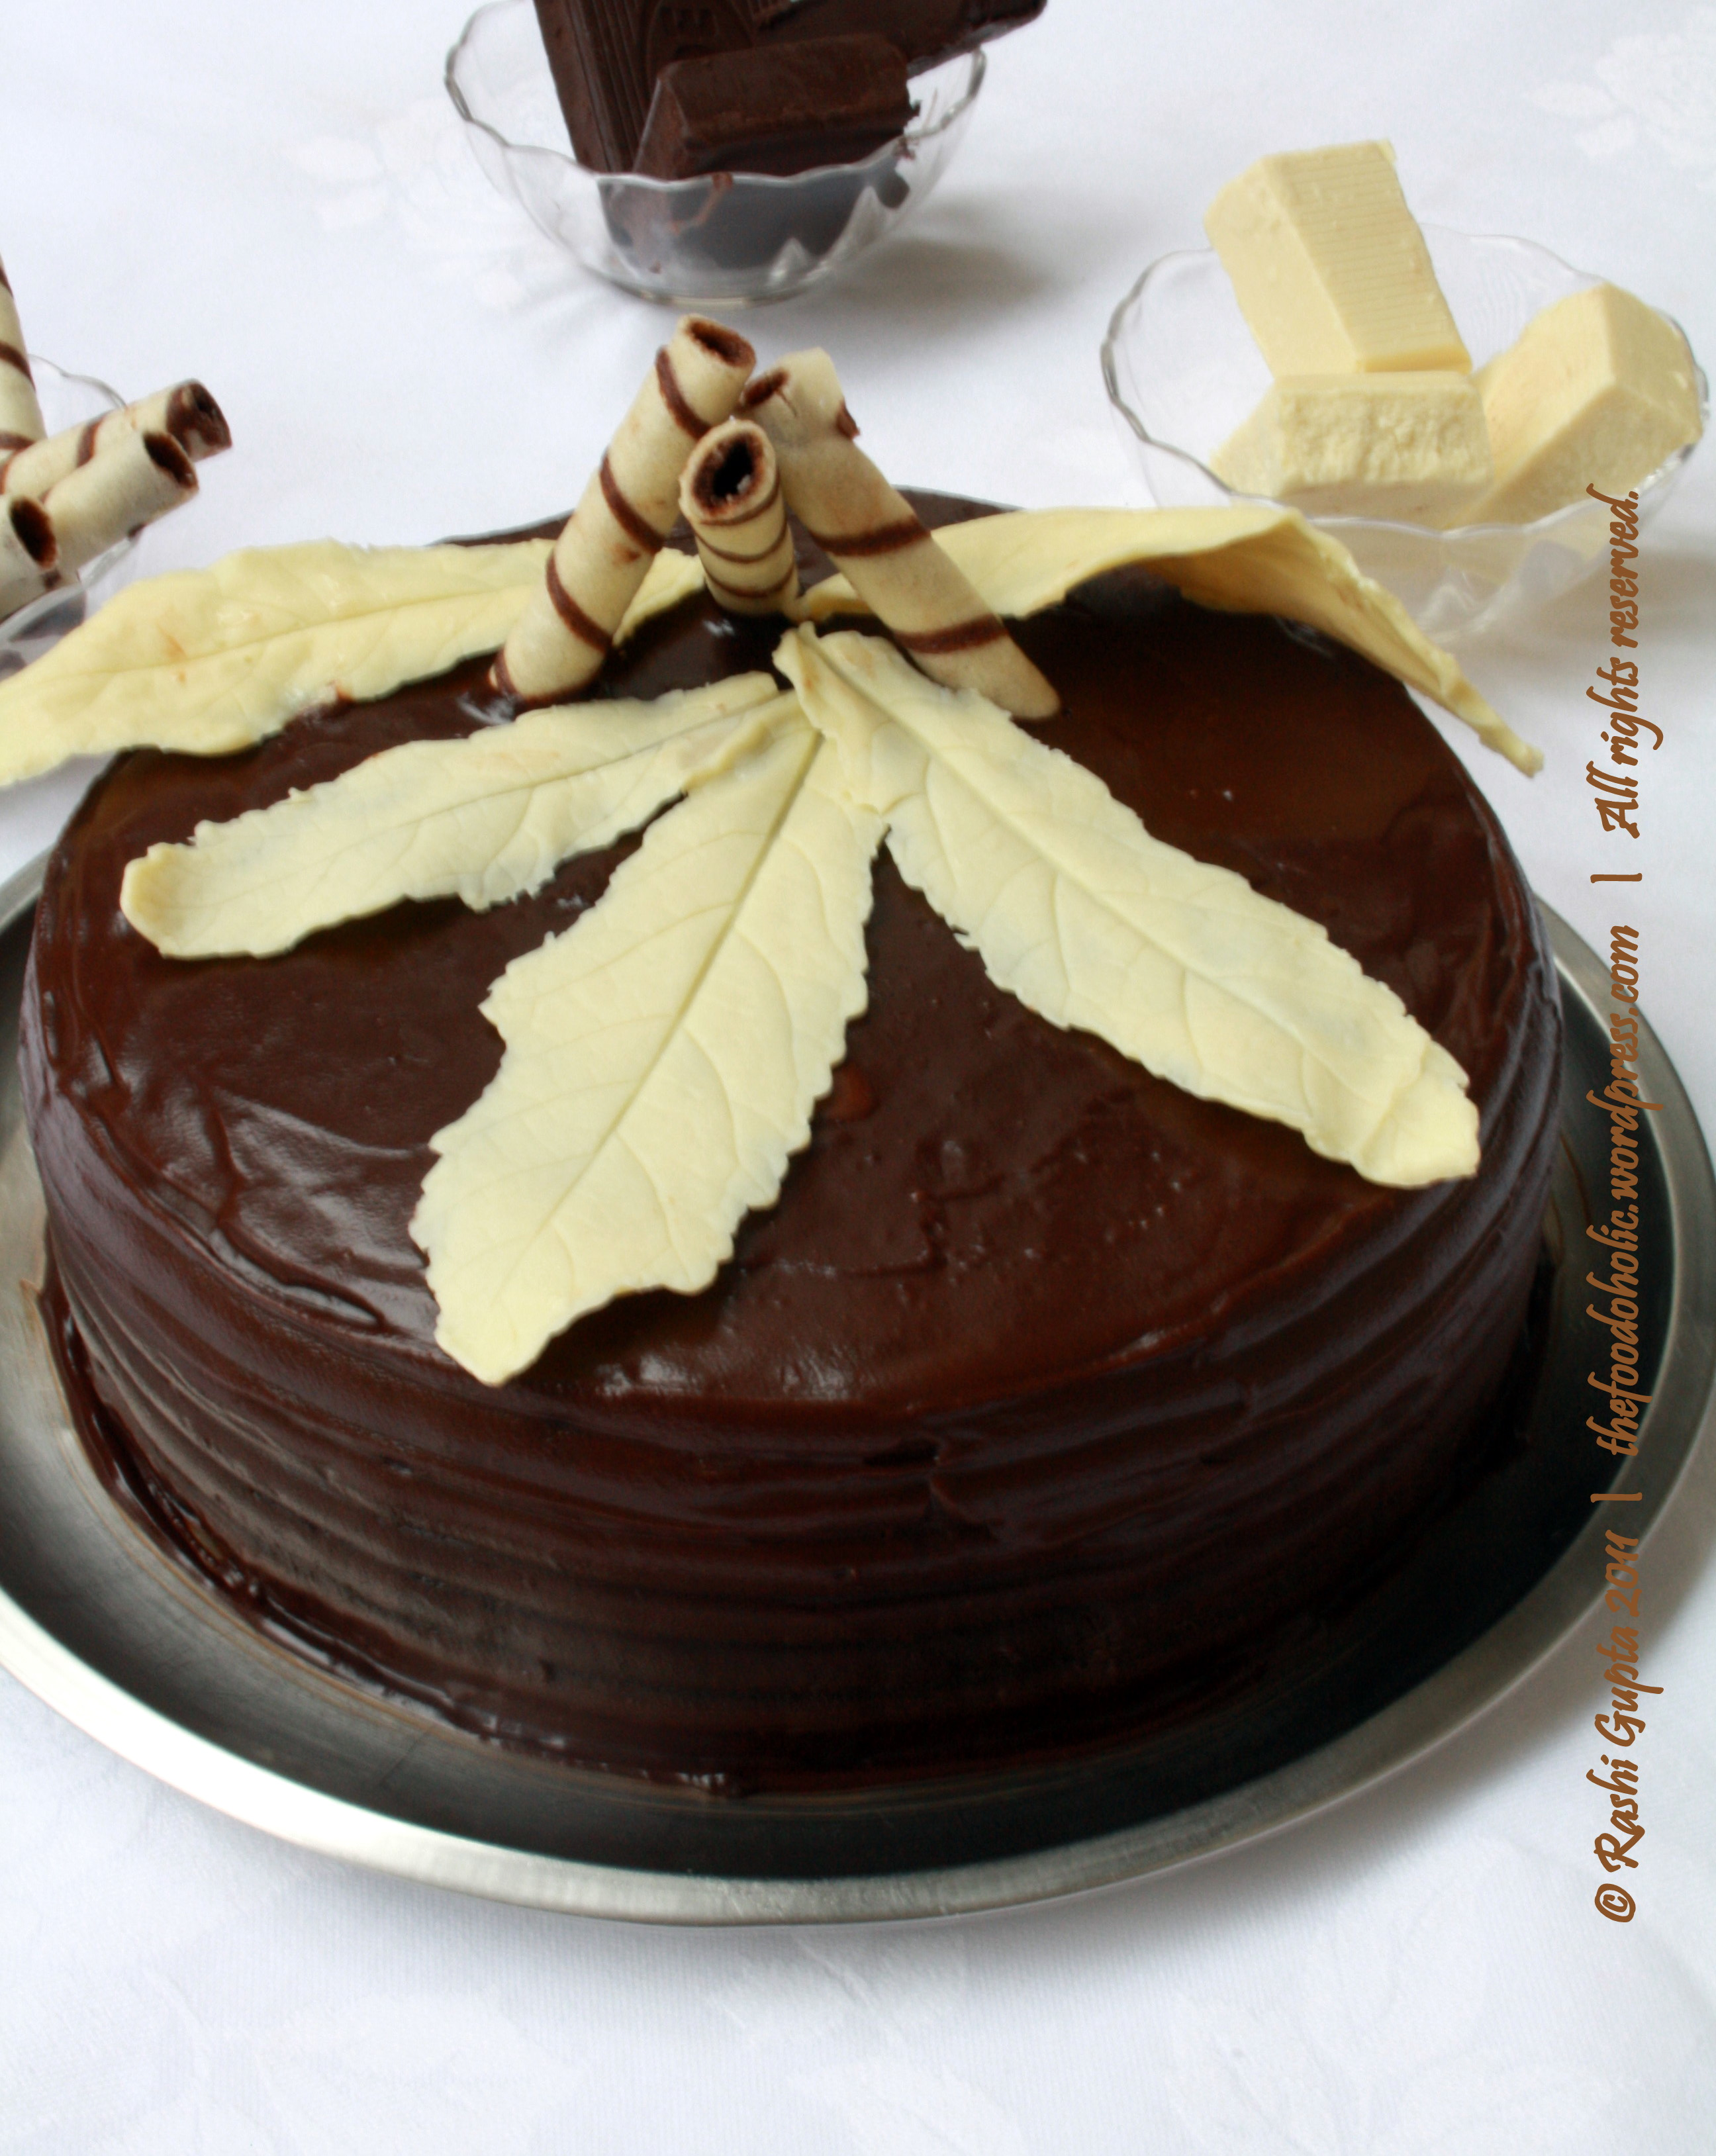 Making chocolate truffle cake | The gastronomic adventures of an ...